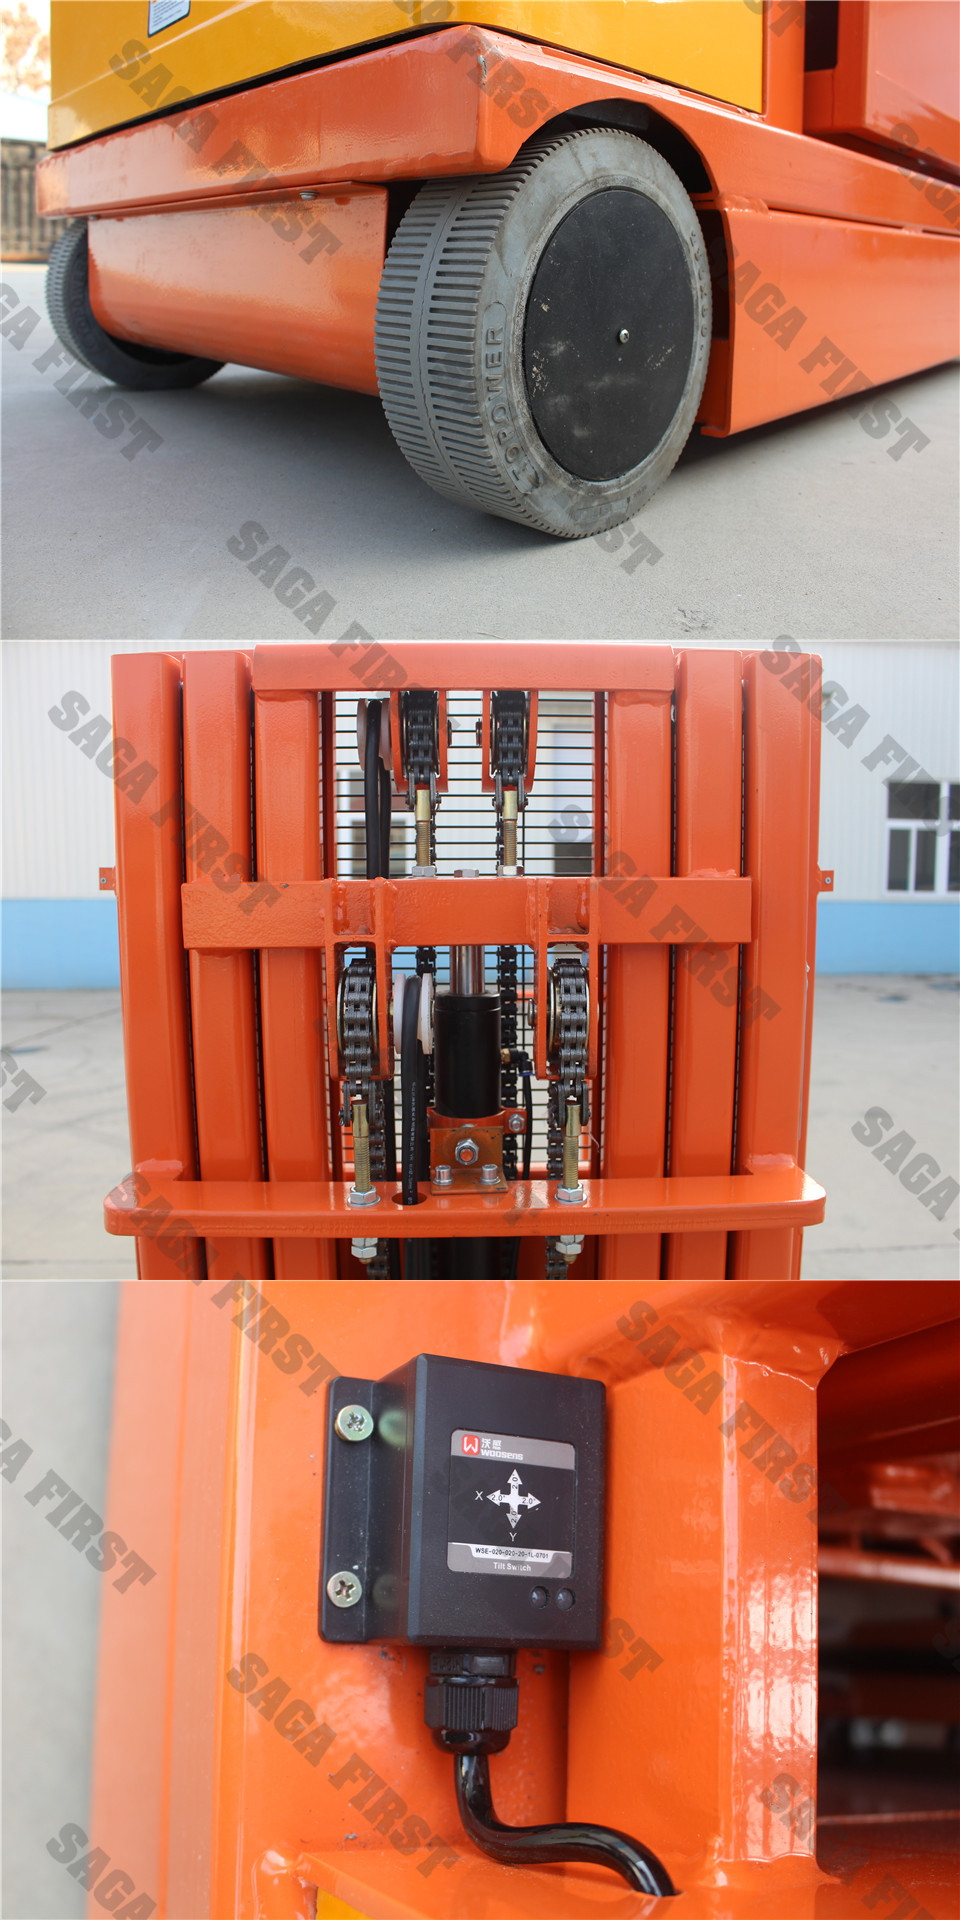 HTB19iFsm8USMeJjy1zkq6yWmpXaU - CE Certificated Lifting Equipment Mobile Cargo Lift Electric Stacker